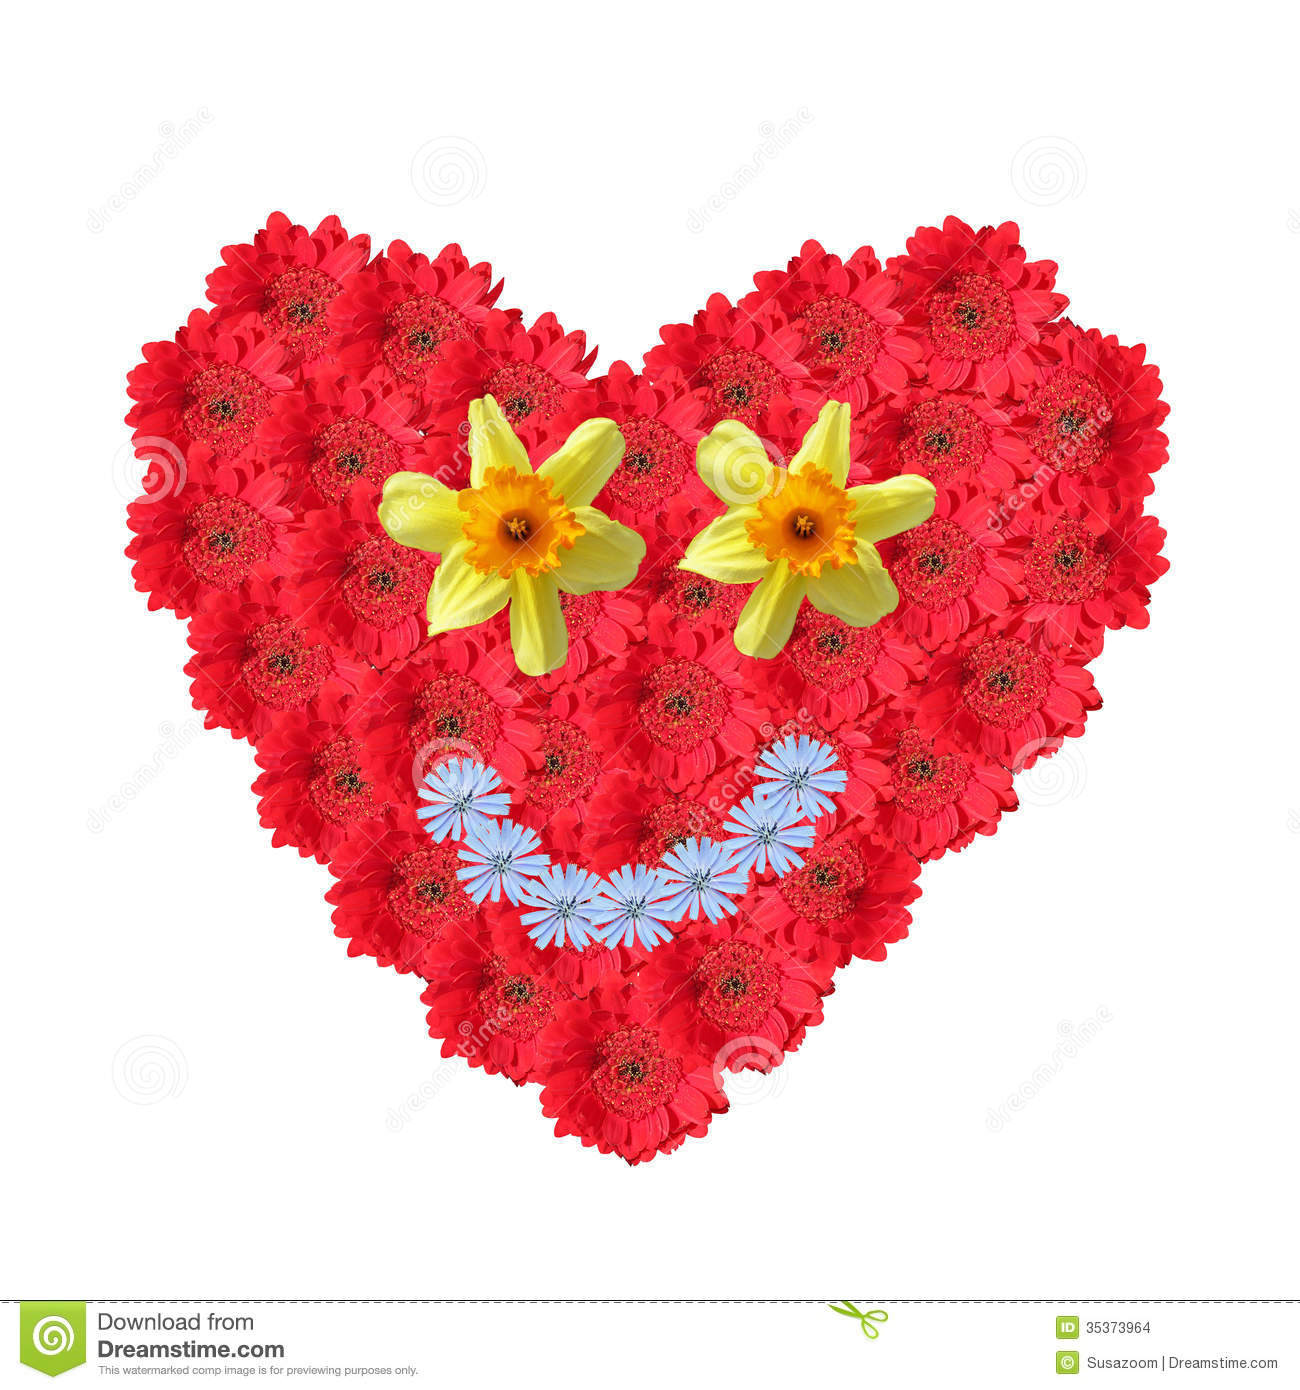 smiling flower heart stock images  image, Beautiful flower